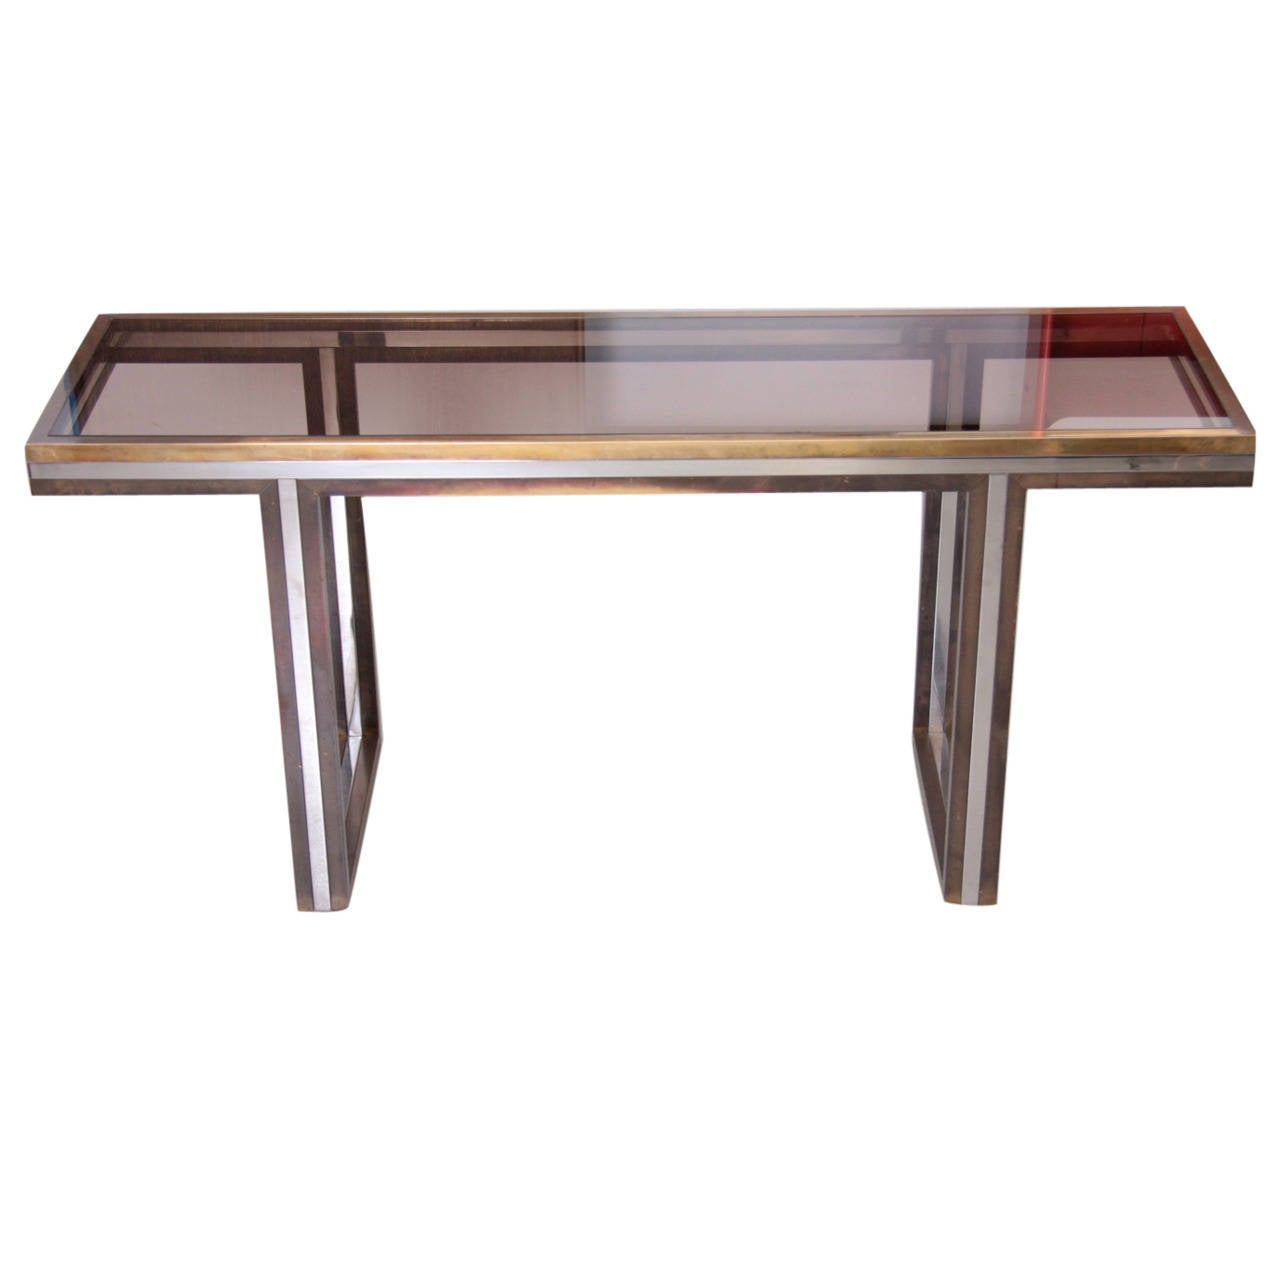 XXL Romeo Rega Brass and Chrome Console Table